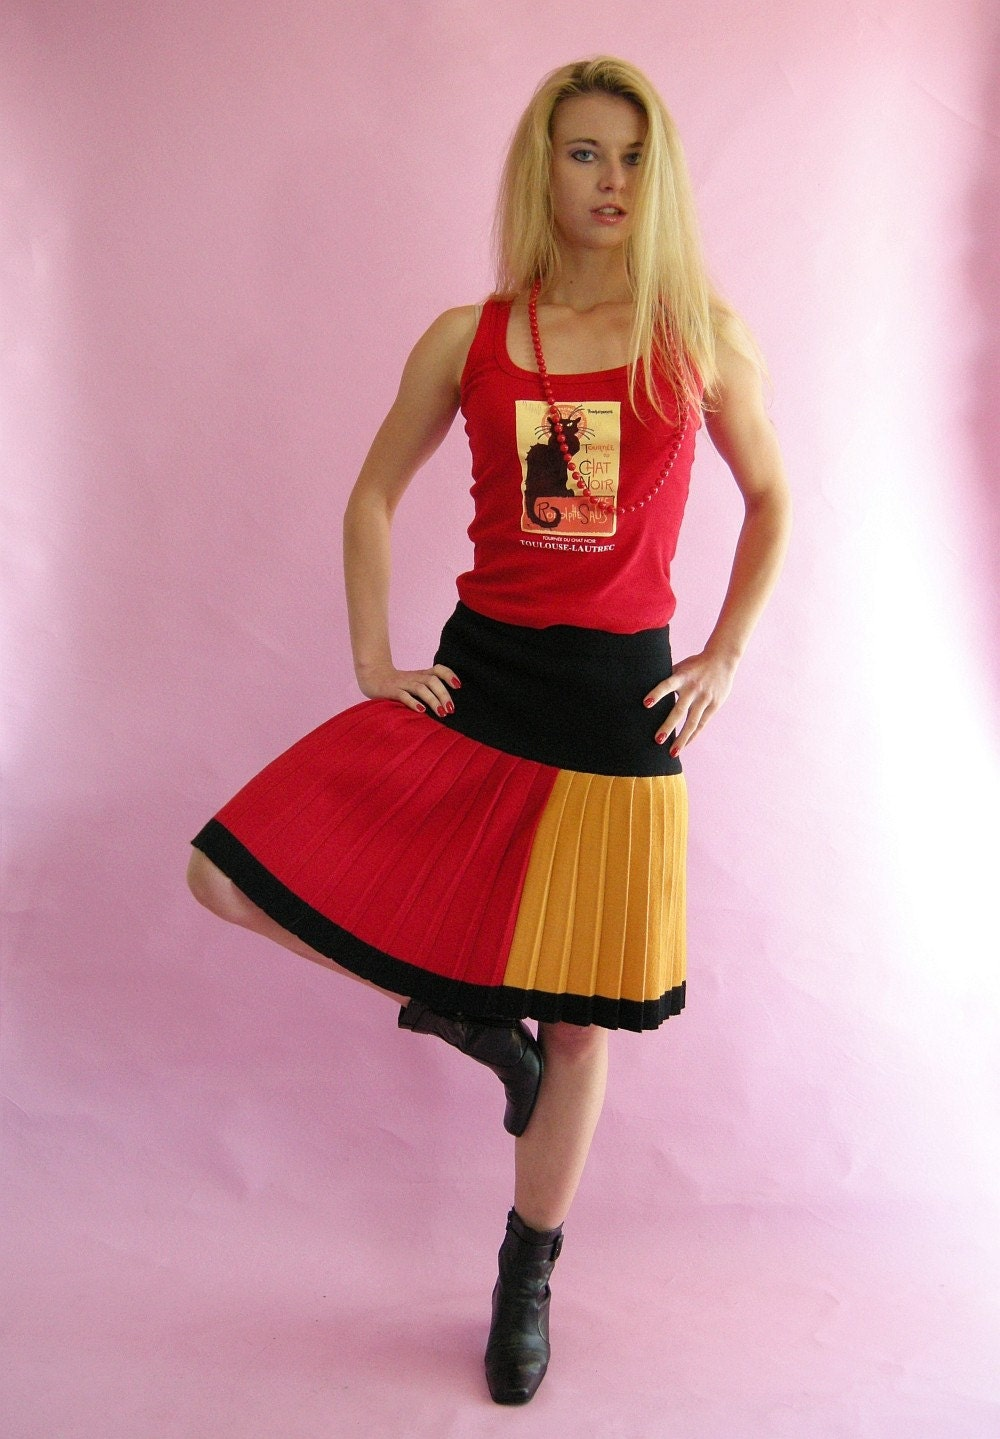 COLOR Block Pleated Vintage 80s Liz Claiborne Skirt by empressjade from etsy.com